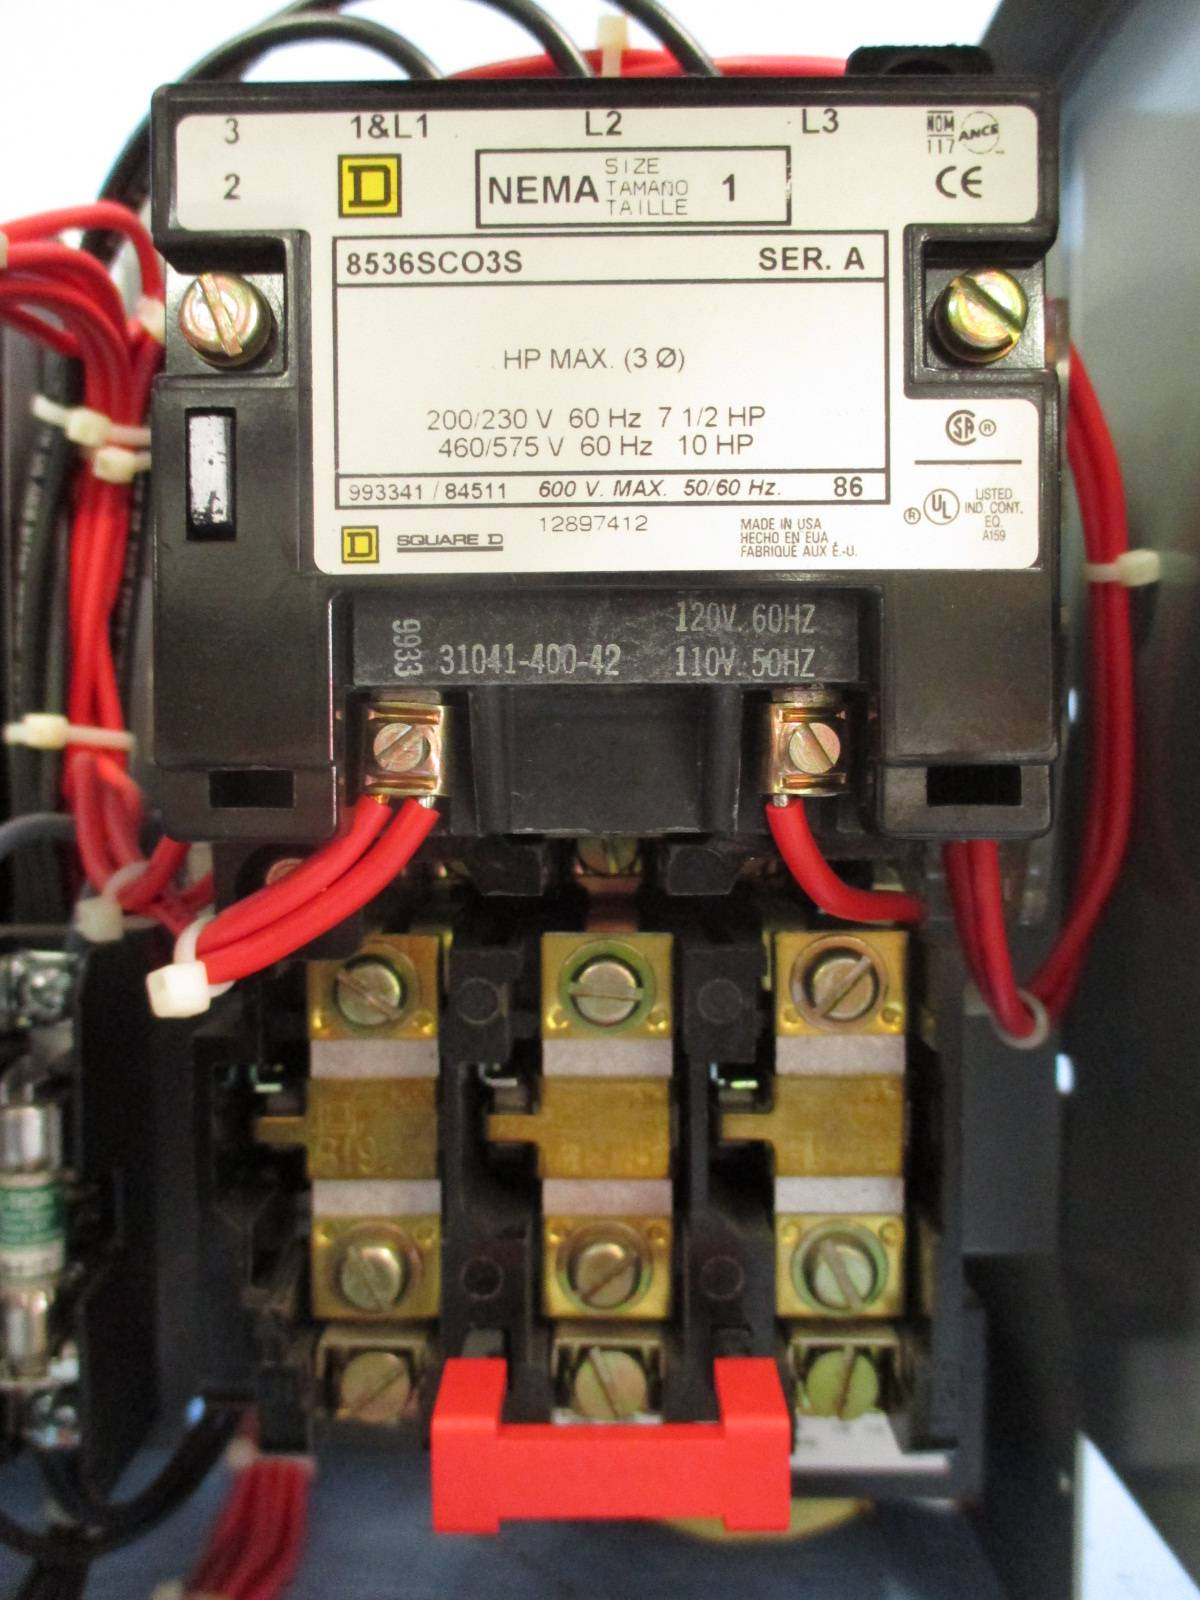 Square D Combination Starter Wiring Diagram 43 Nema Size 2 Tk0000 Model 6 1 15 A Fap Breaker Mcc Bucket Amp